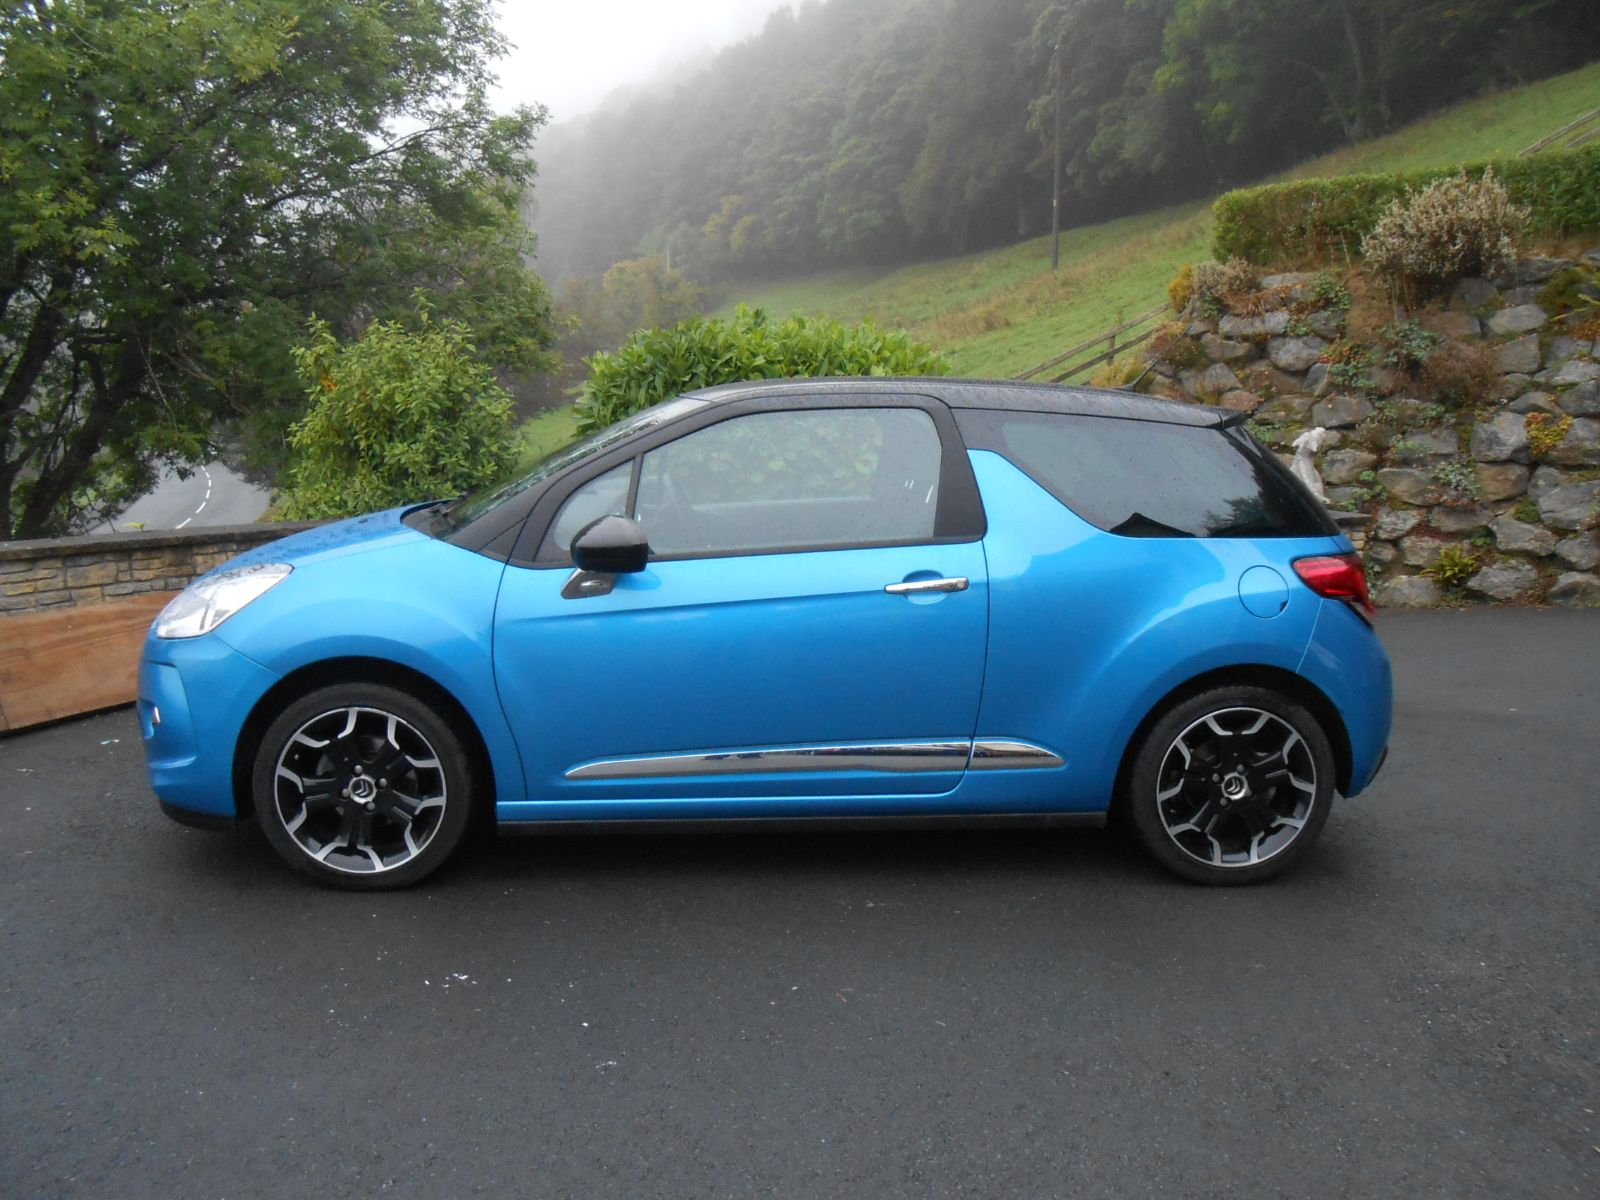 Citroen Ds3 1 6 Vti Dstyle 3 Door Car For Sale